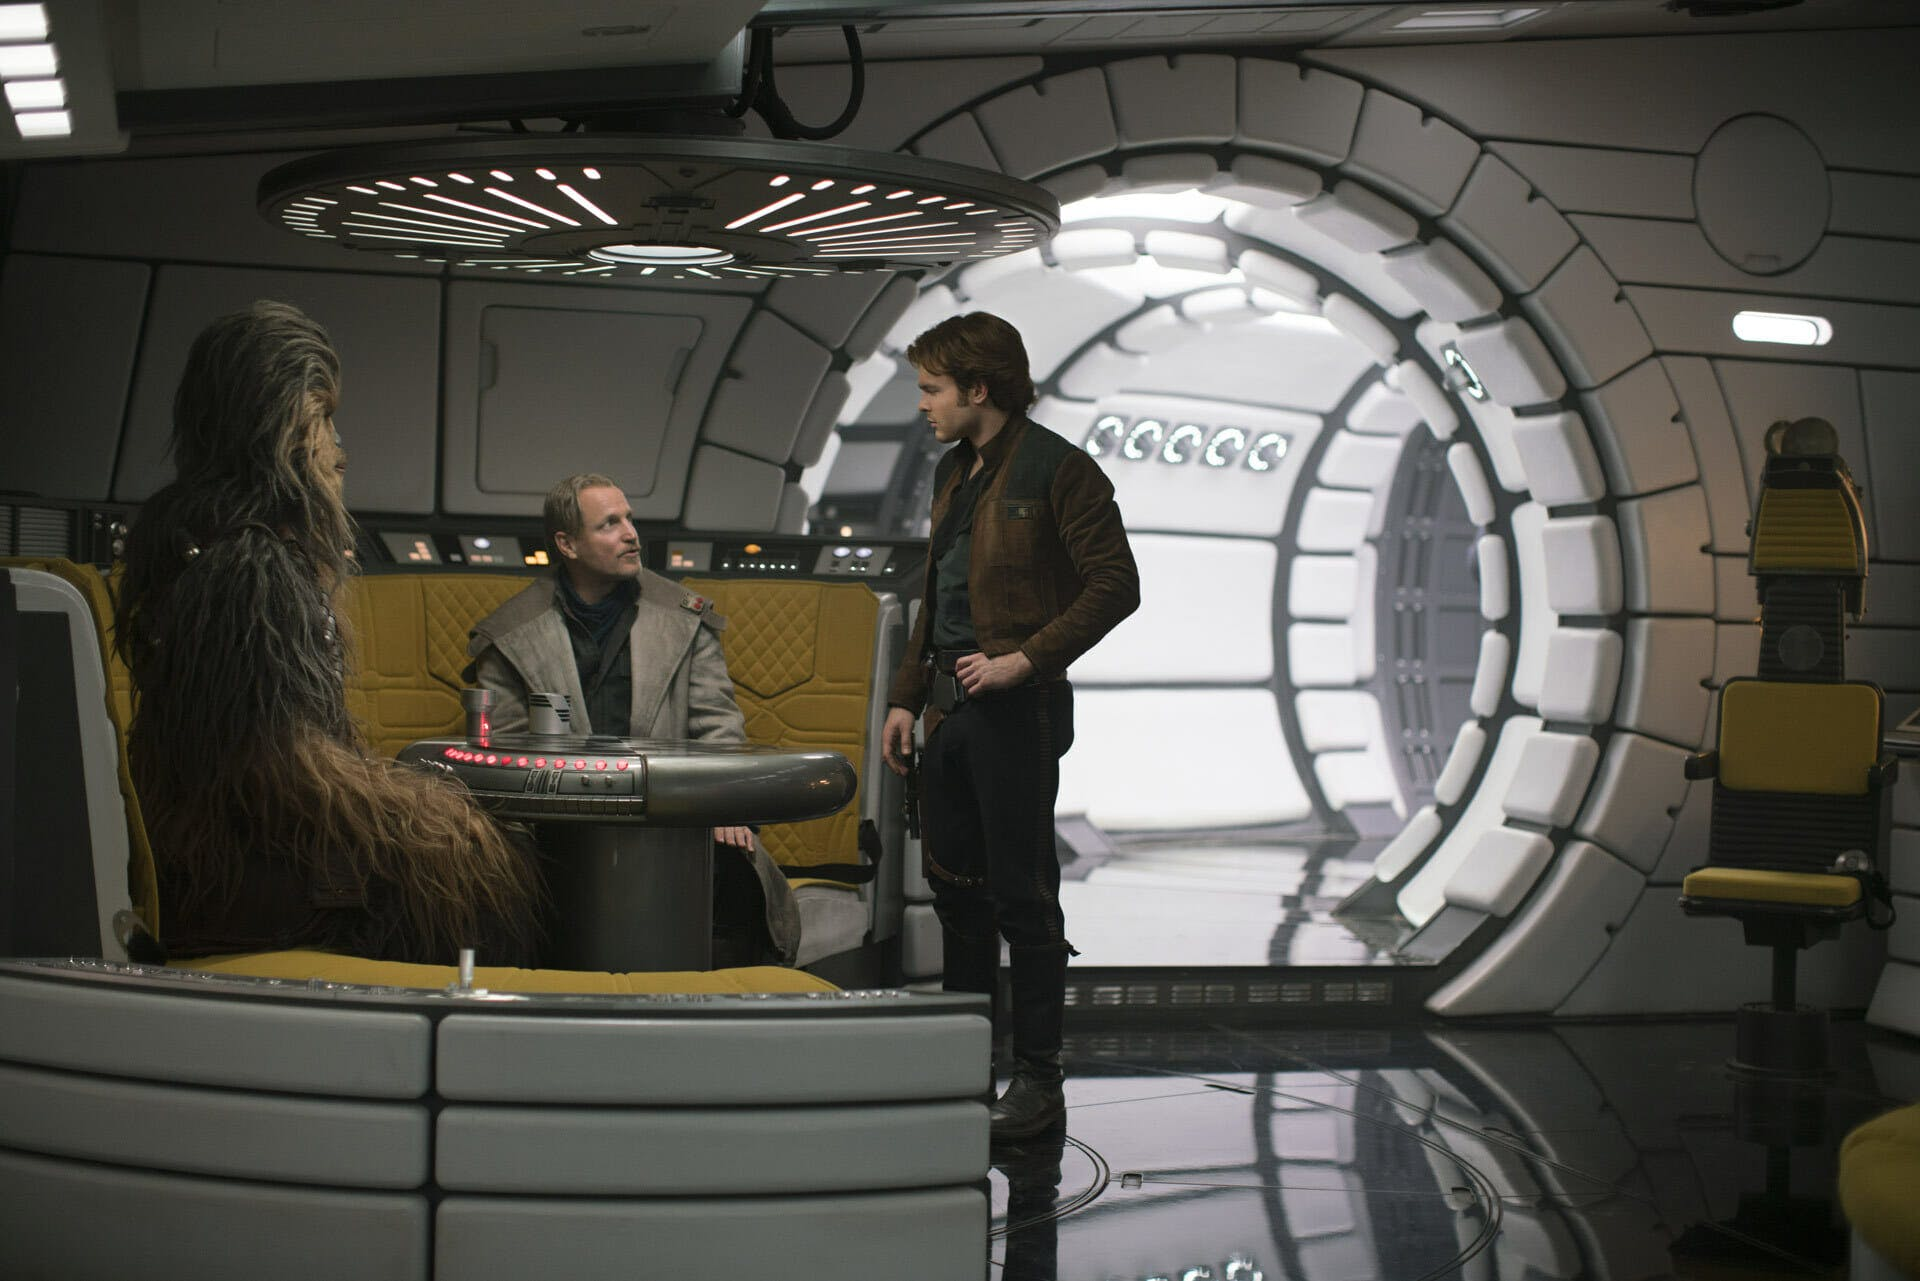 solo star wars story